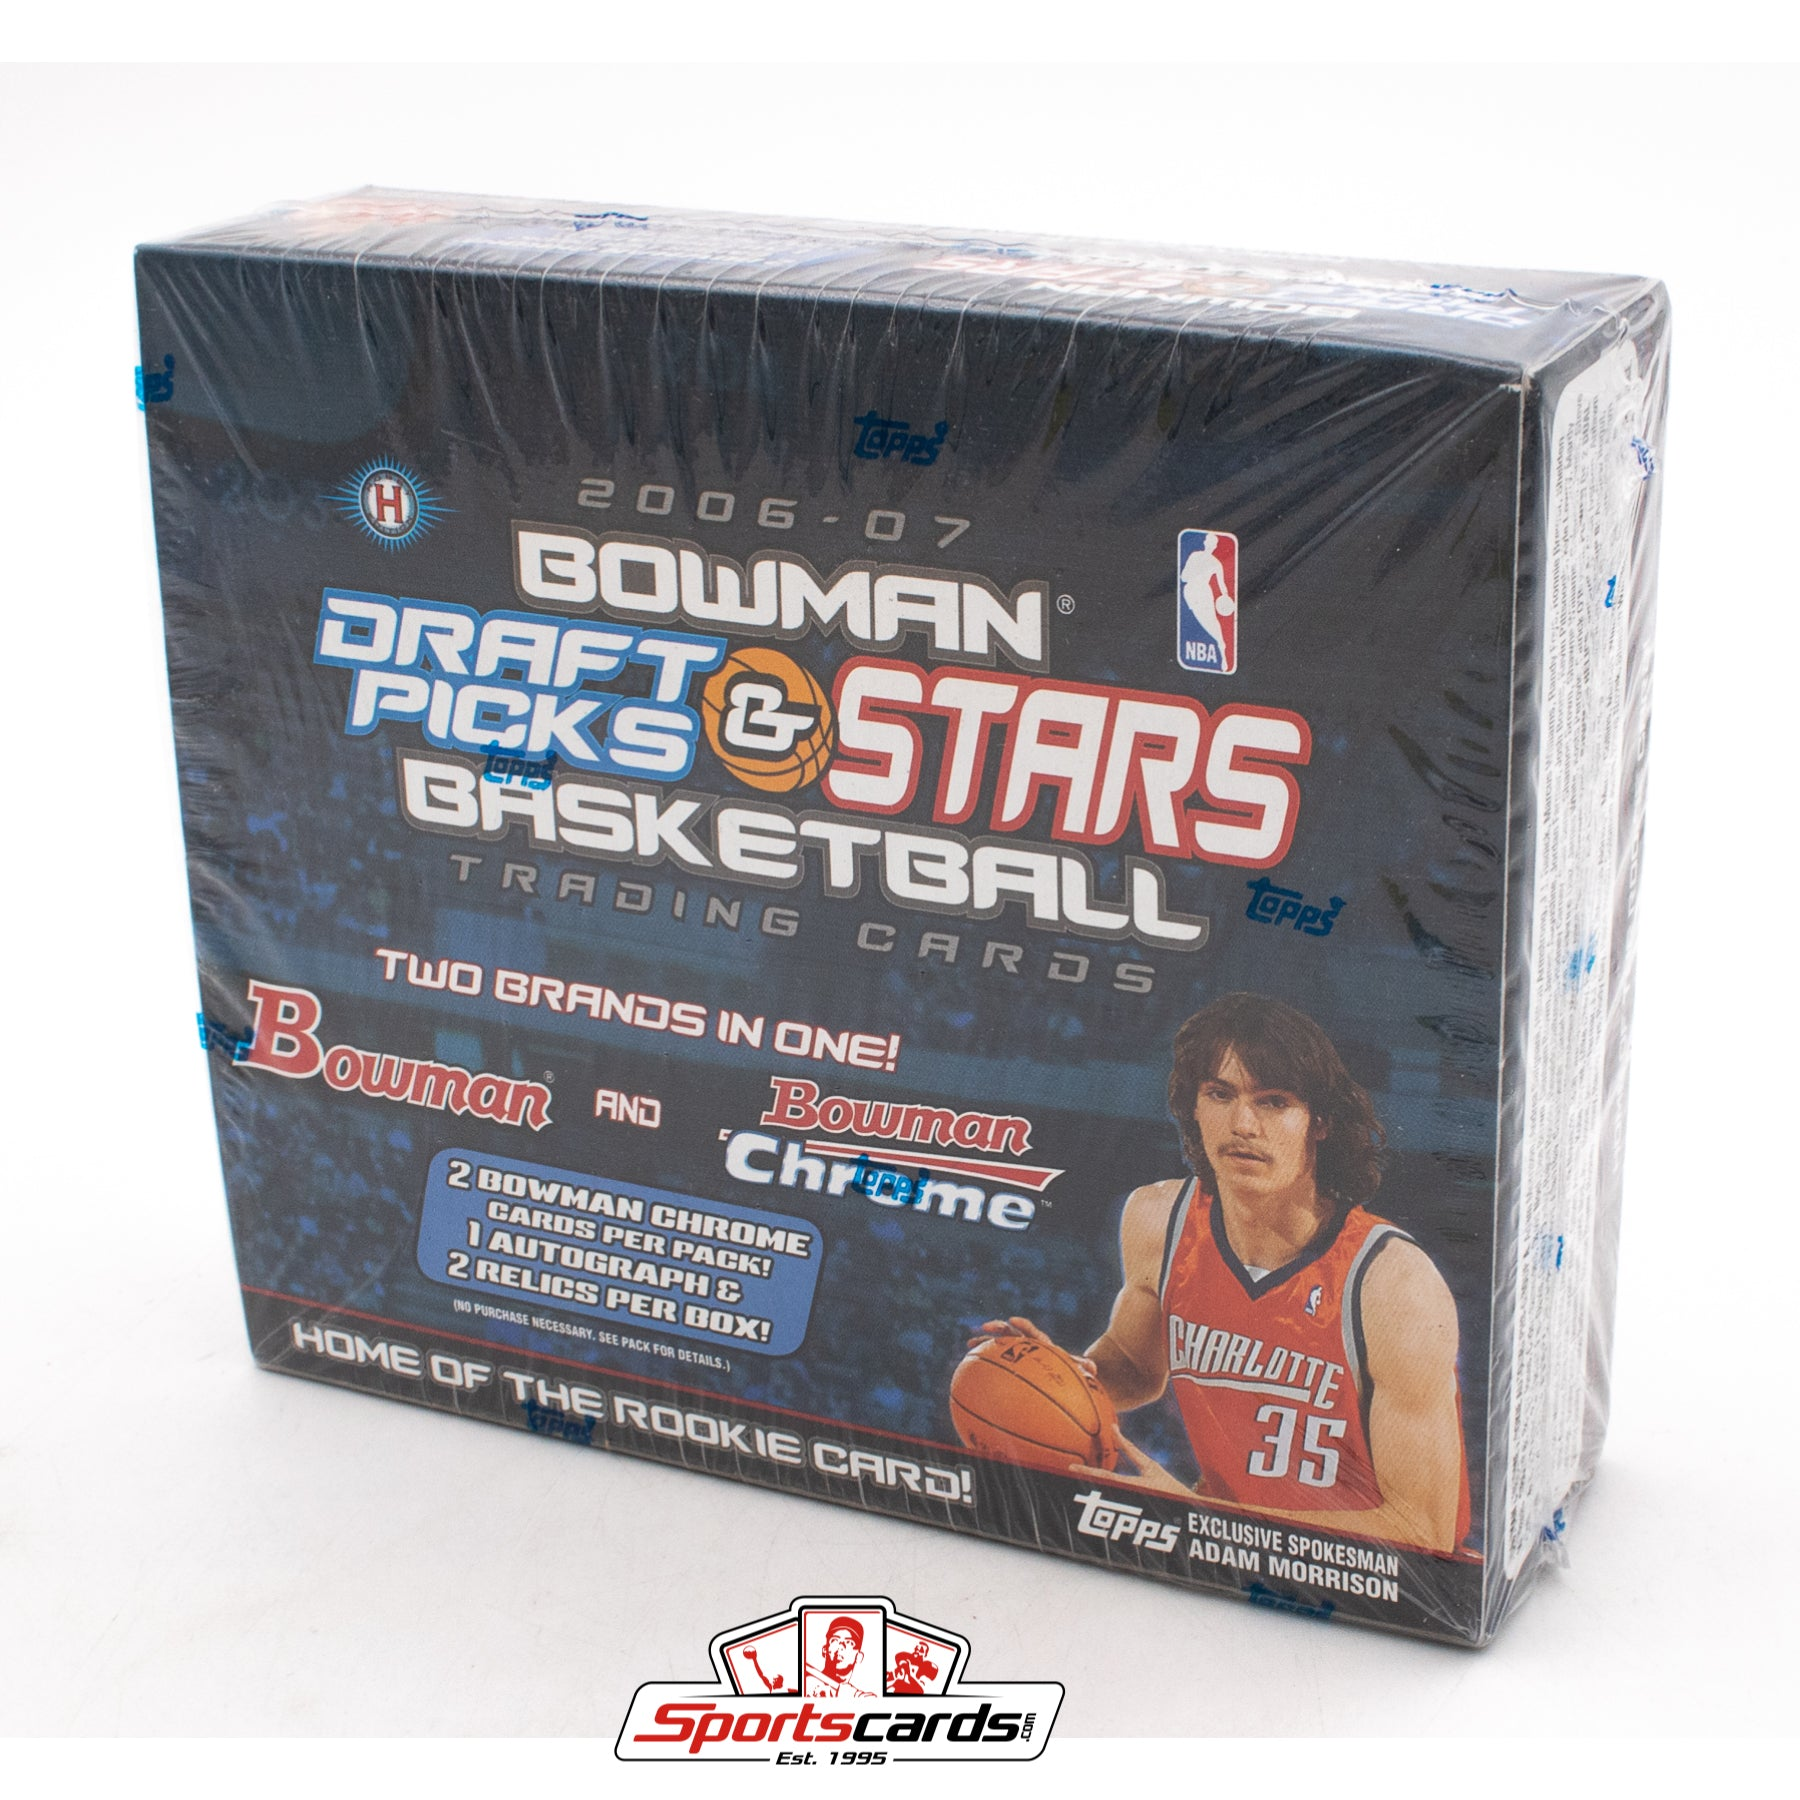 2006-07 Bowman Draft Picks & Stars Basketball Factory Sealed Box